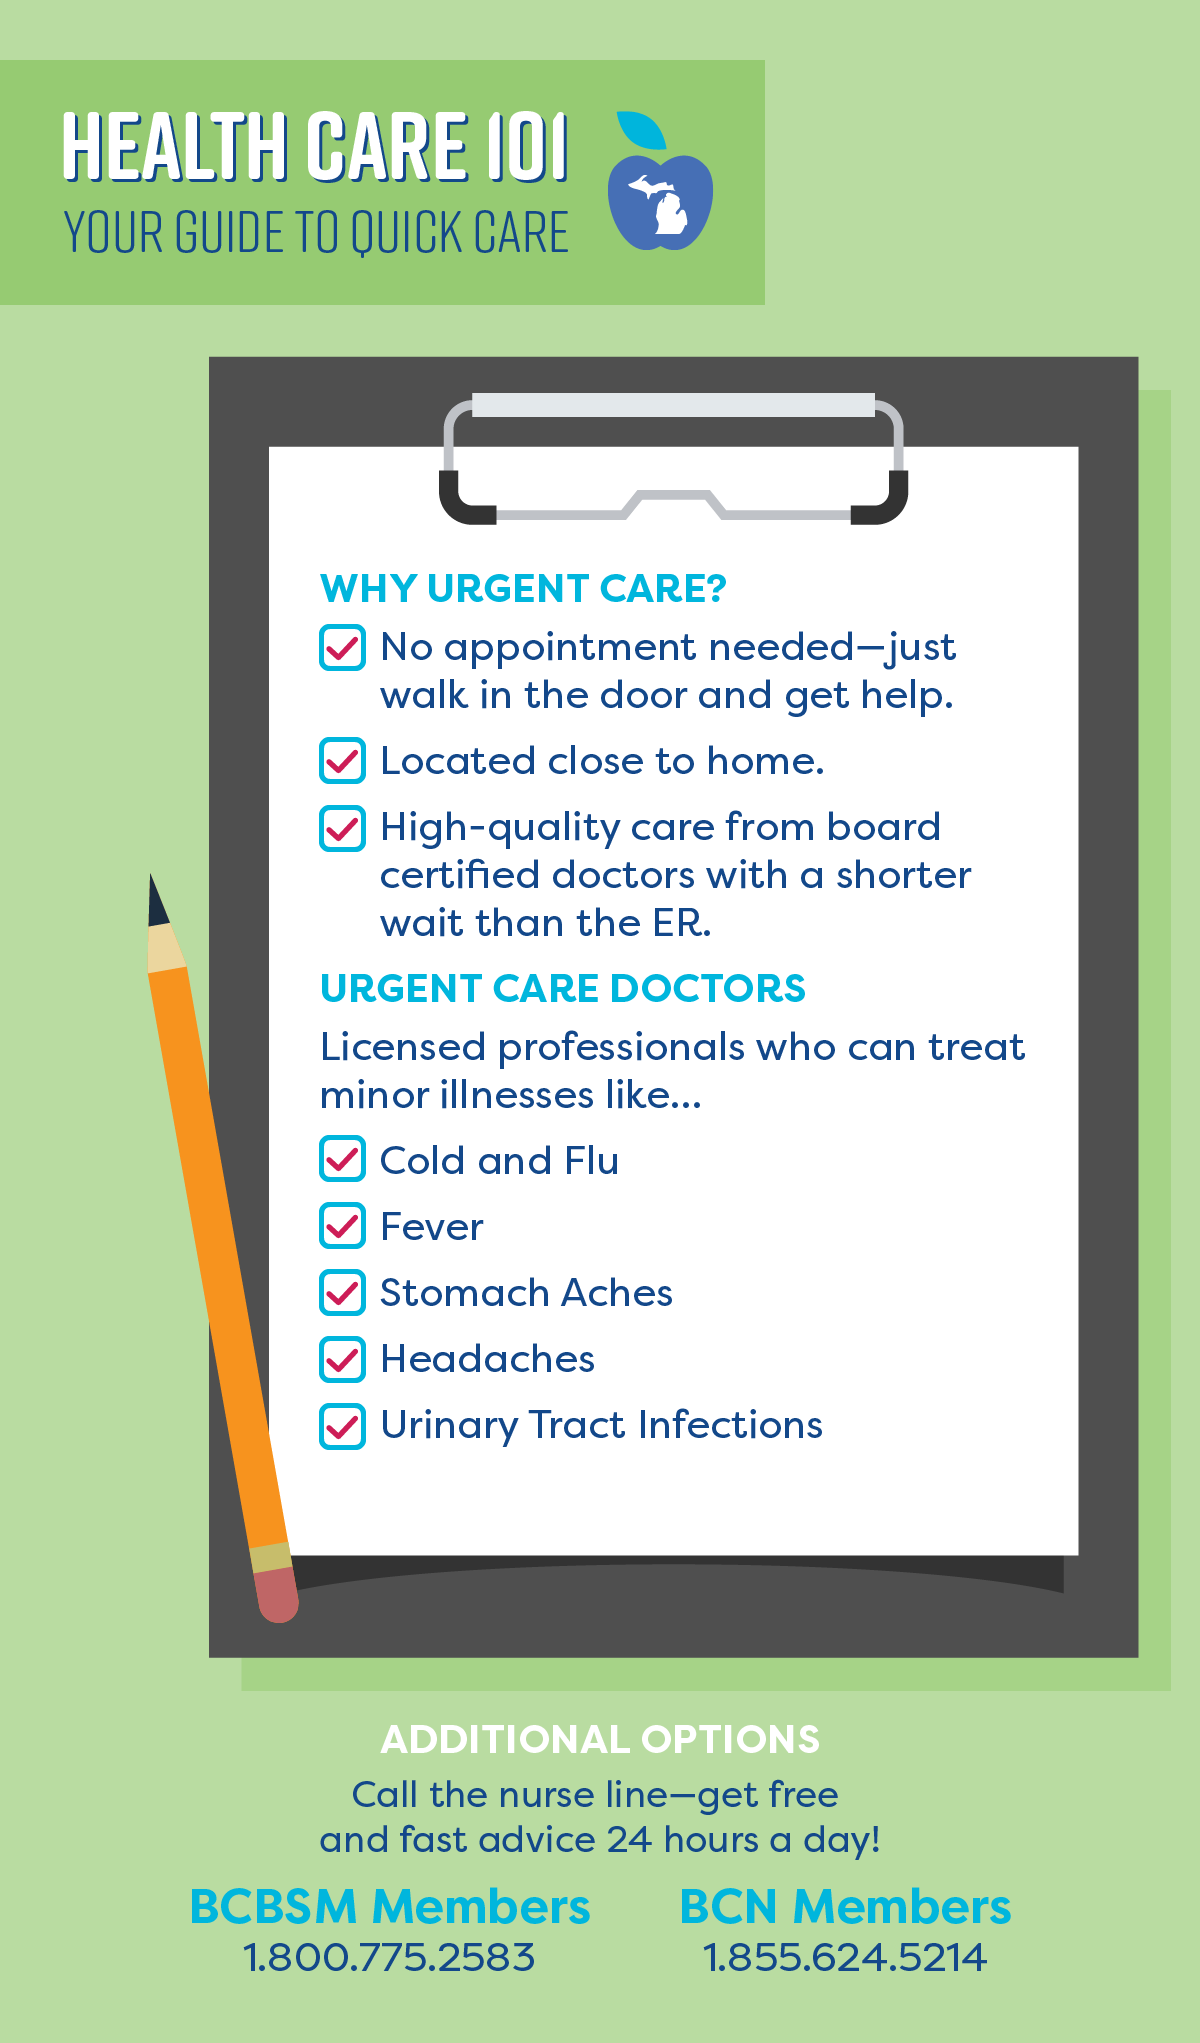 Urgent care and 24/7 online doctor visits may be a better